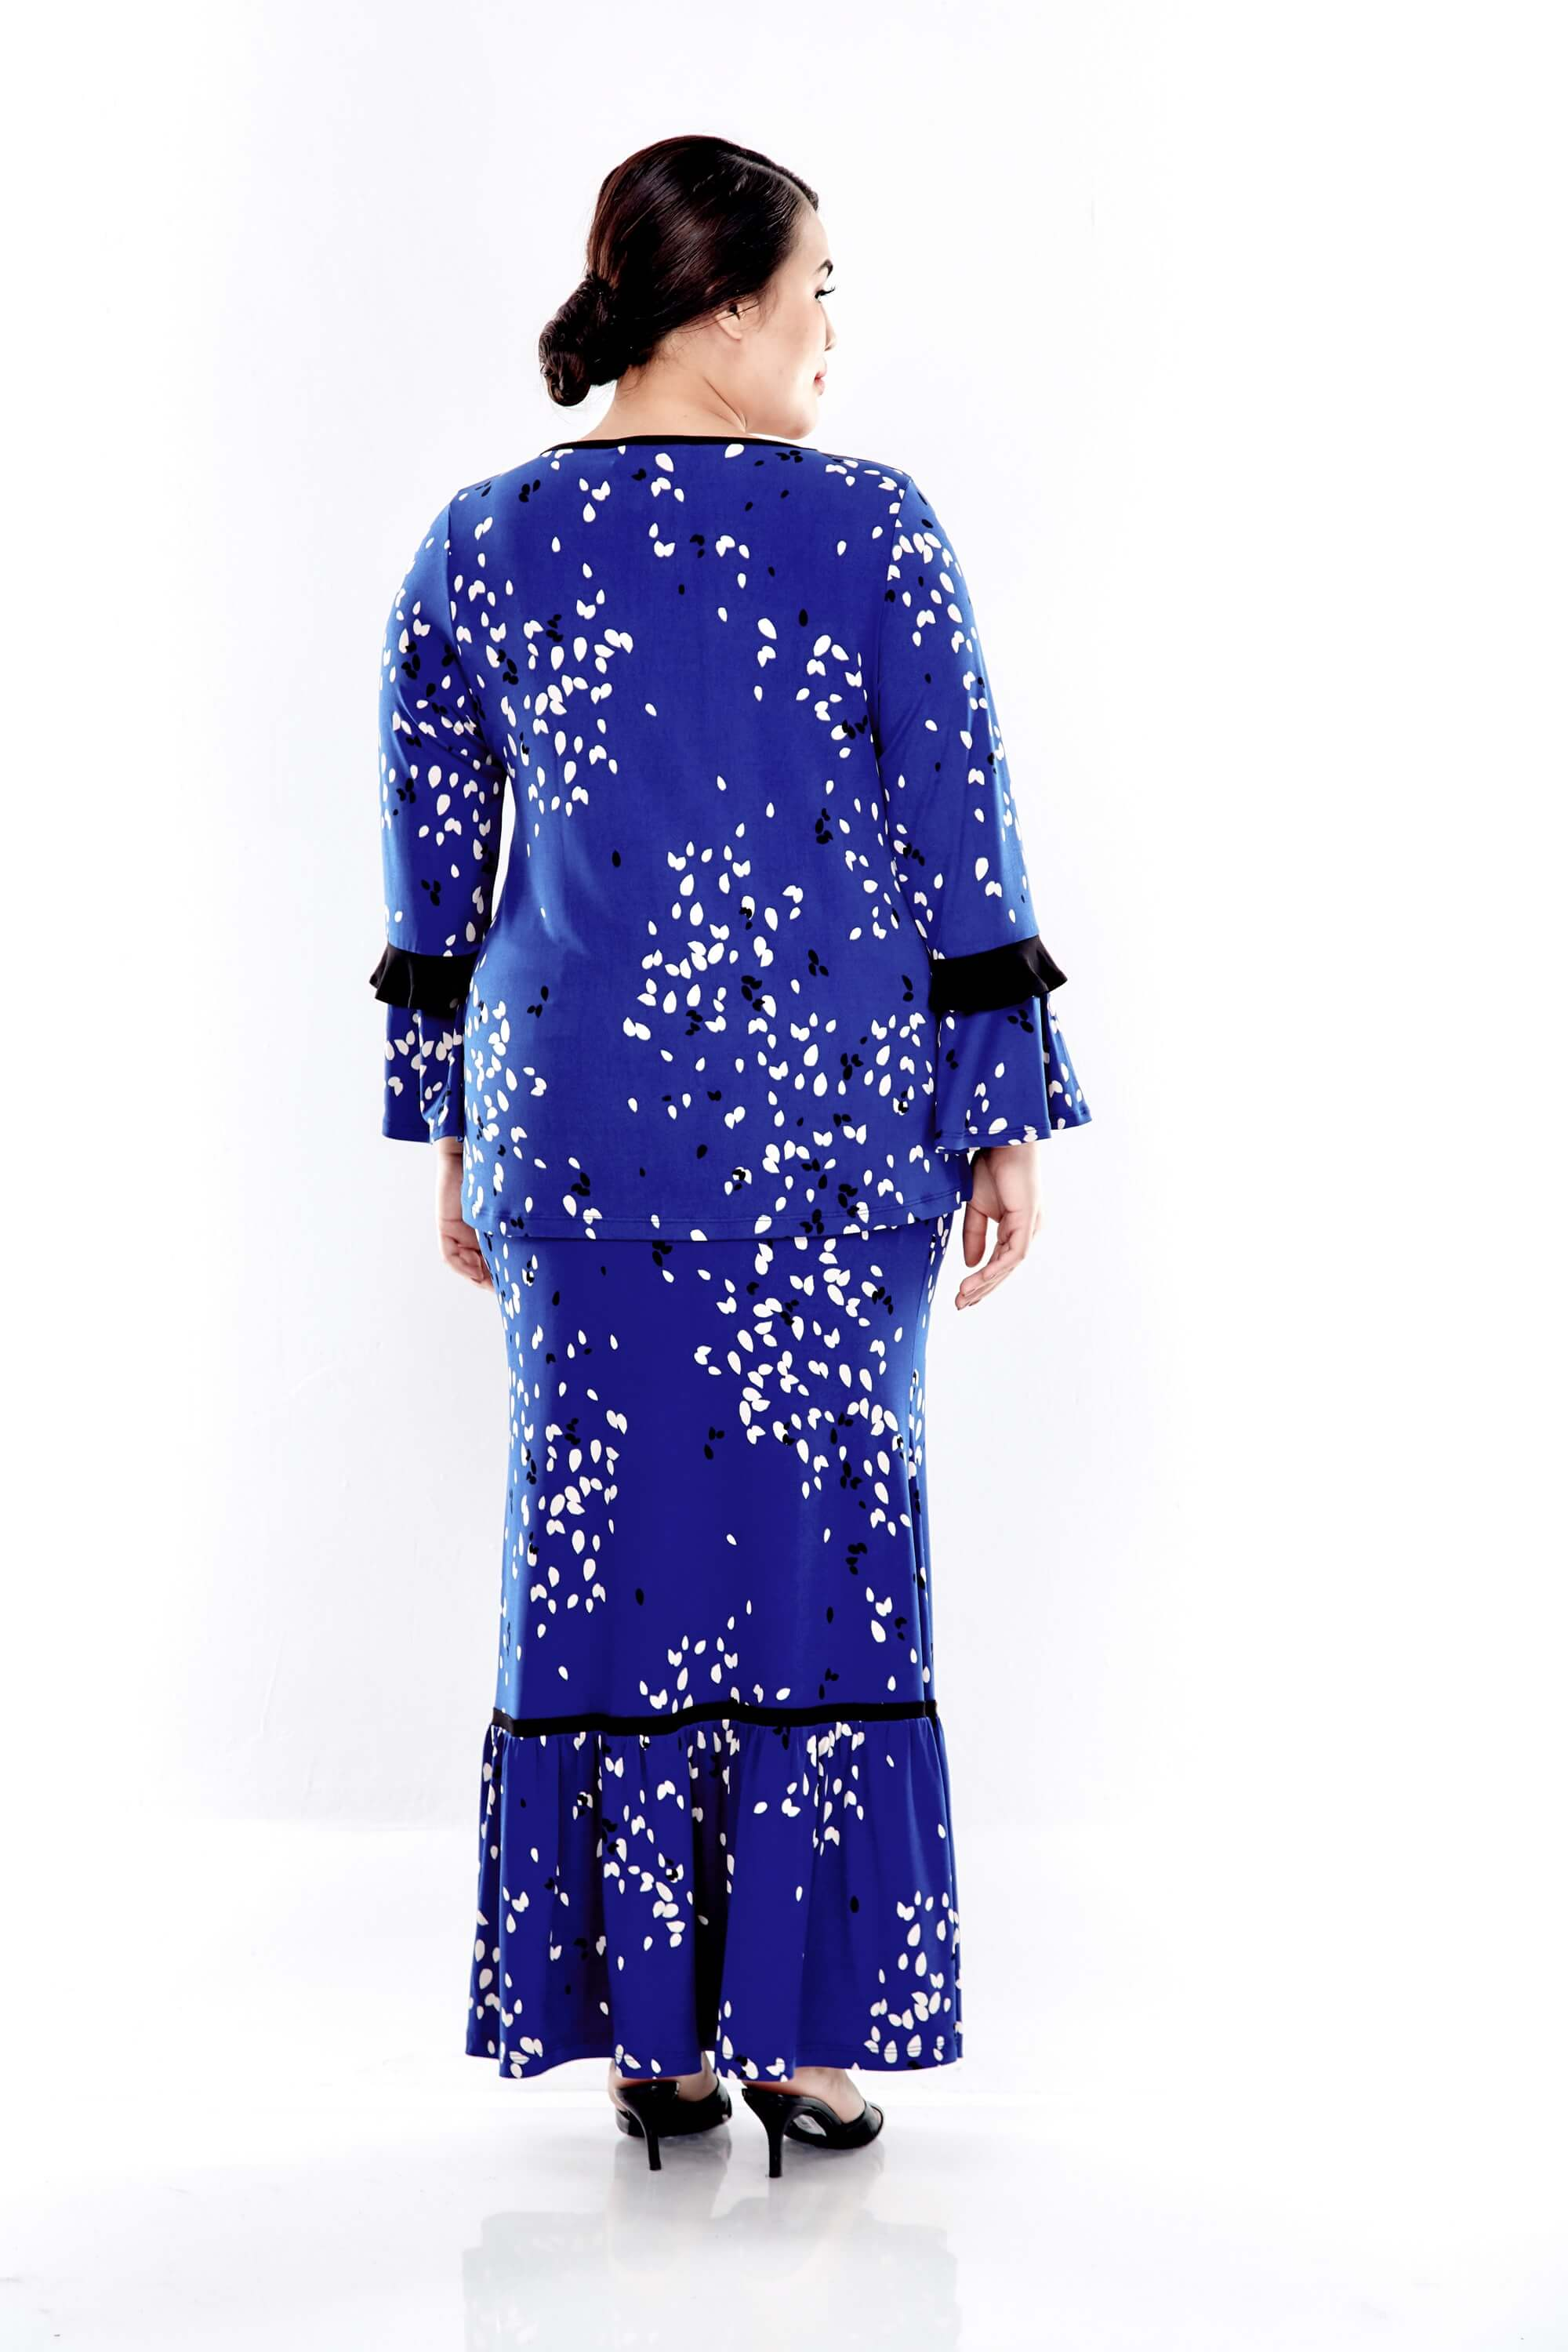 Blue Printed Long Sleeve Blouse With Gathers At Shoulder 1